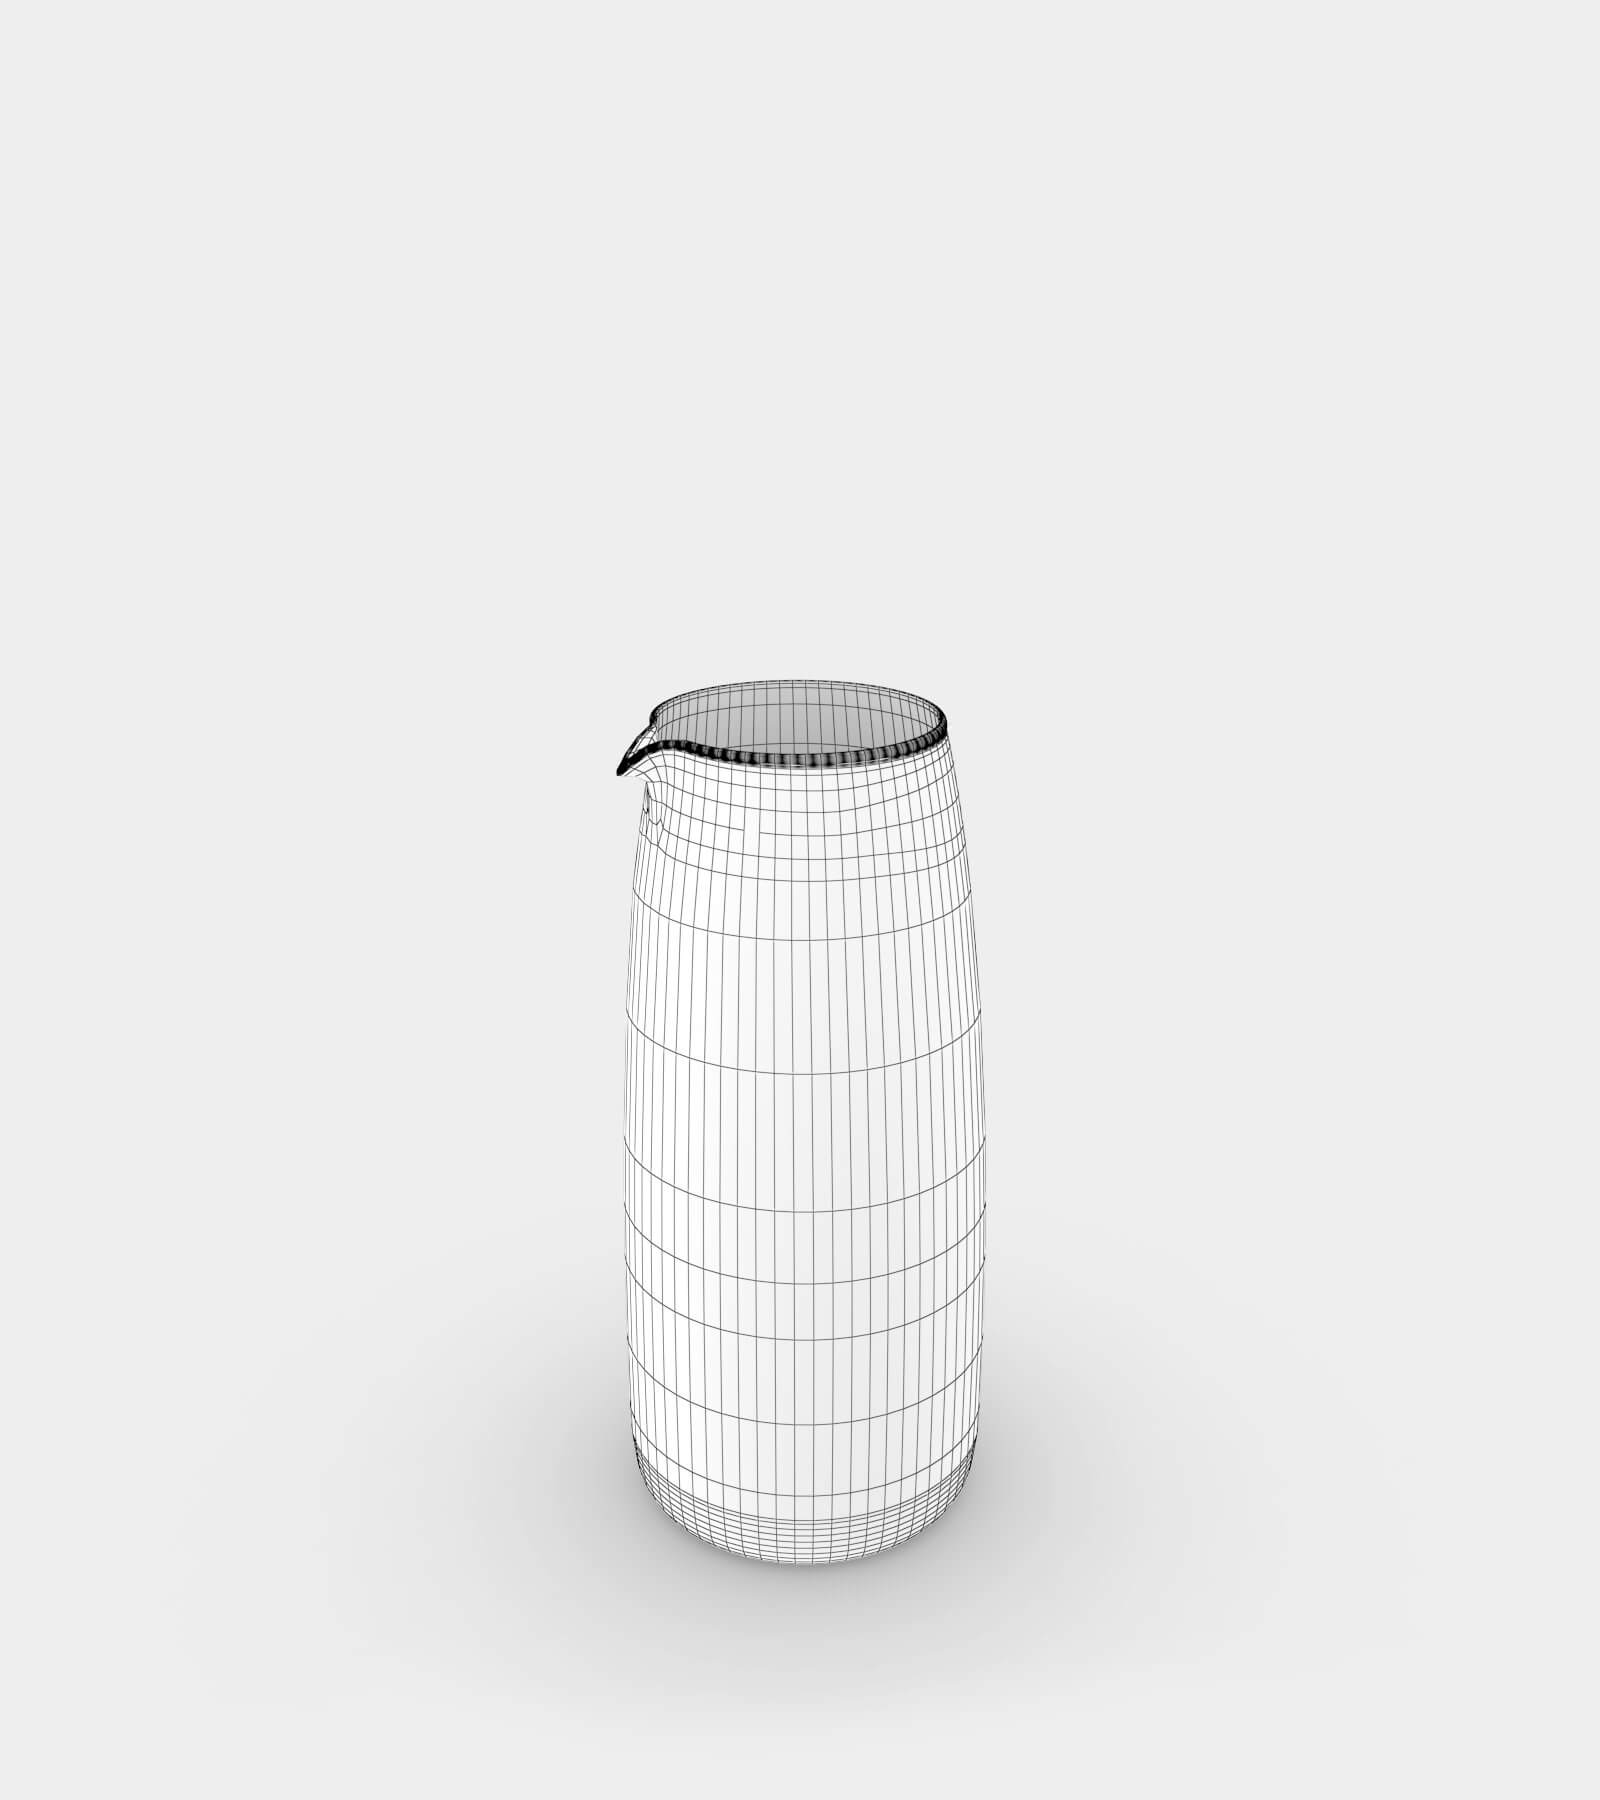 Coloured vases-wire-1 3D Model